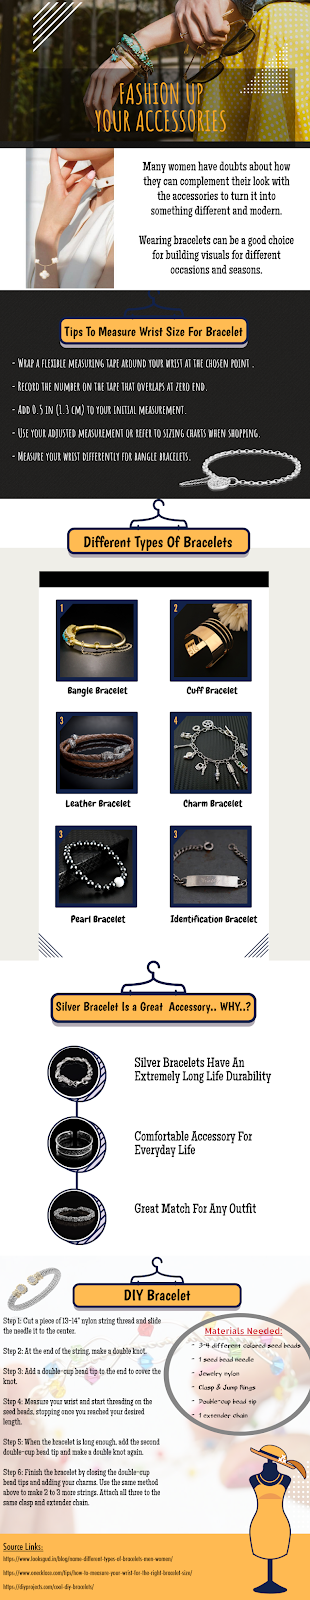 The 5 Bracelets Most Used By Men